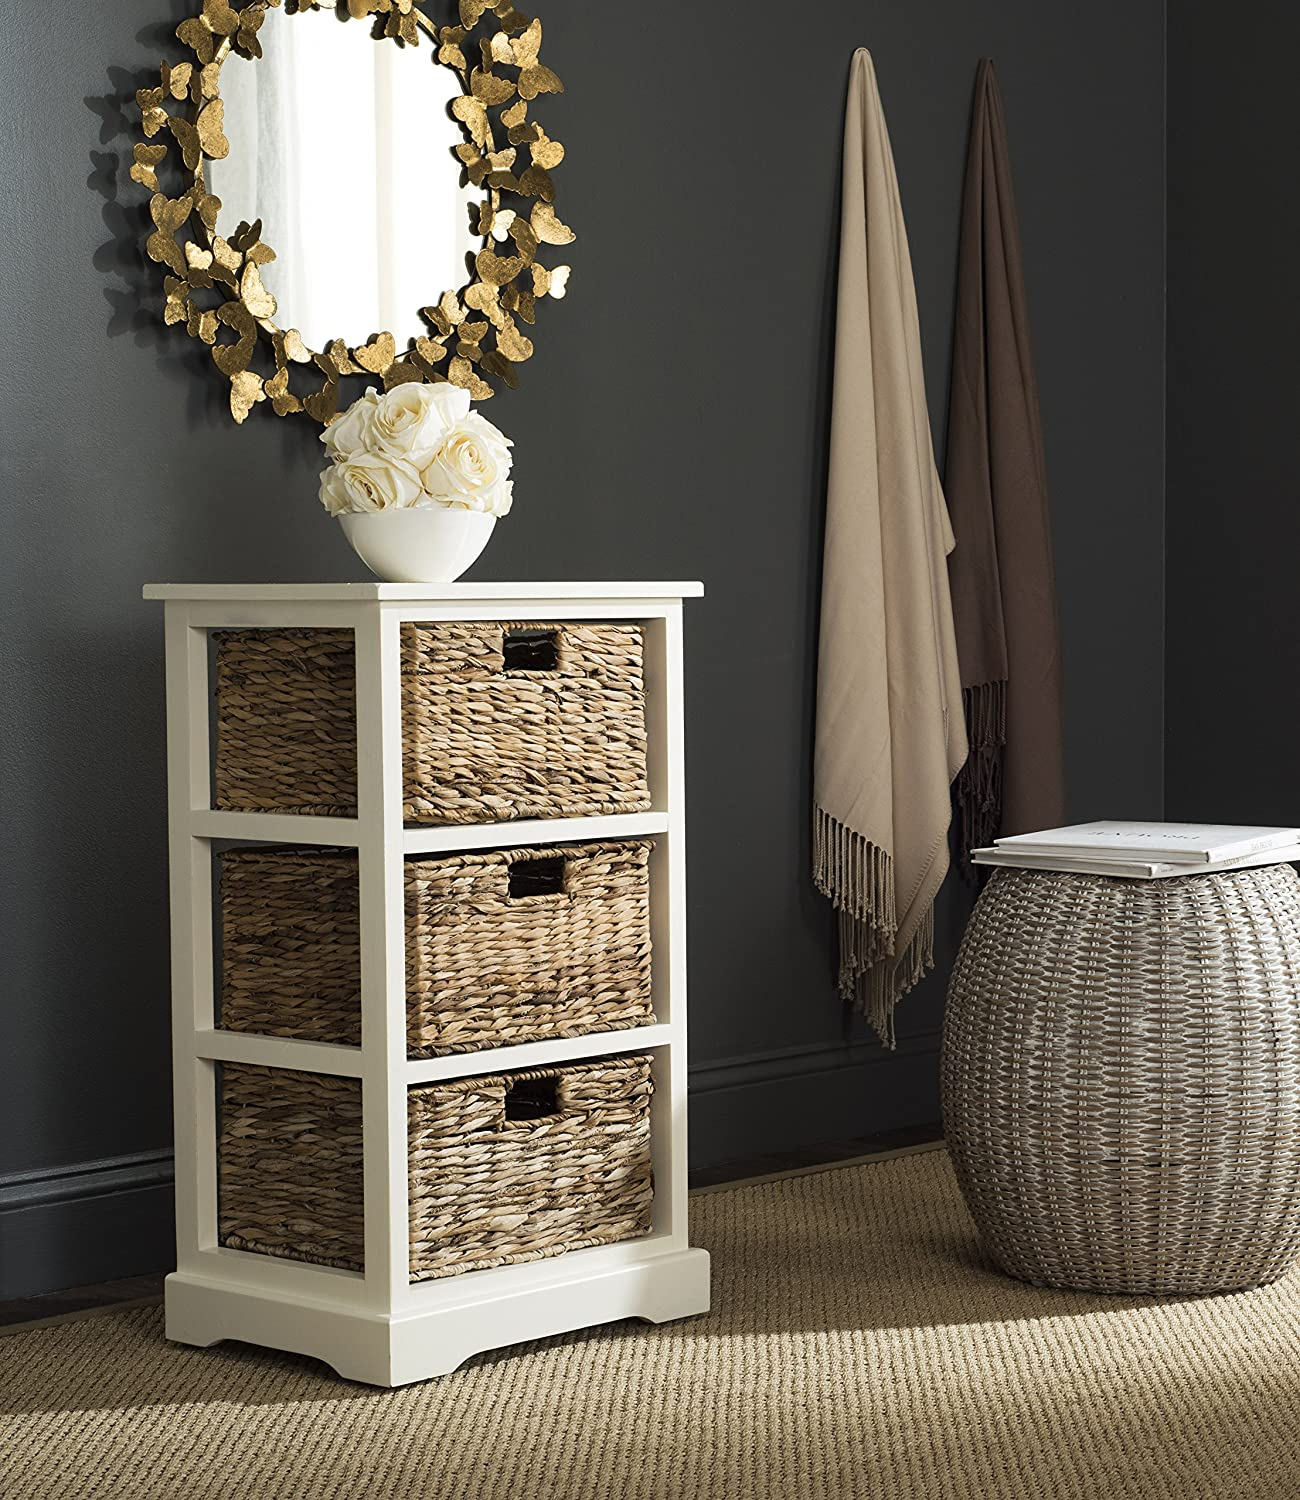 """Safavieh AMH5738B American Homes Collection Halle 3 Wicker Basket Storage Side Table, 17.3"""" x 13.4"""" x 29.5"""", Distressed White"""